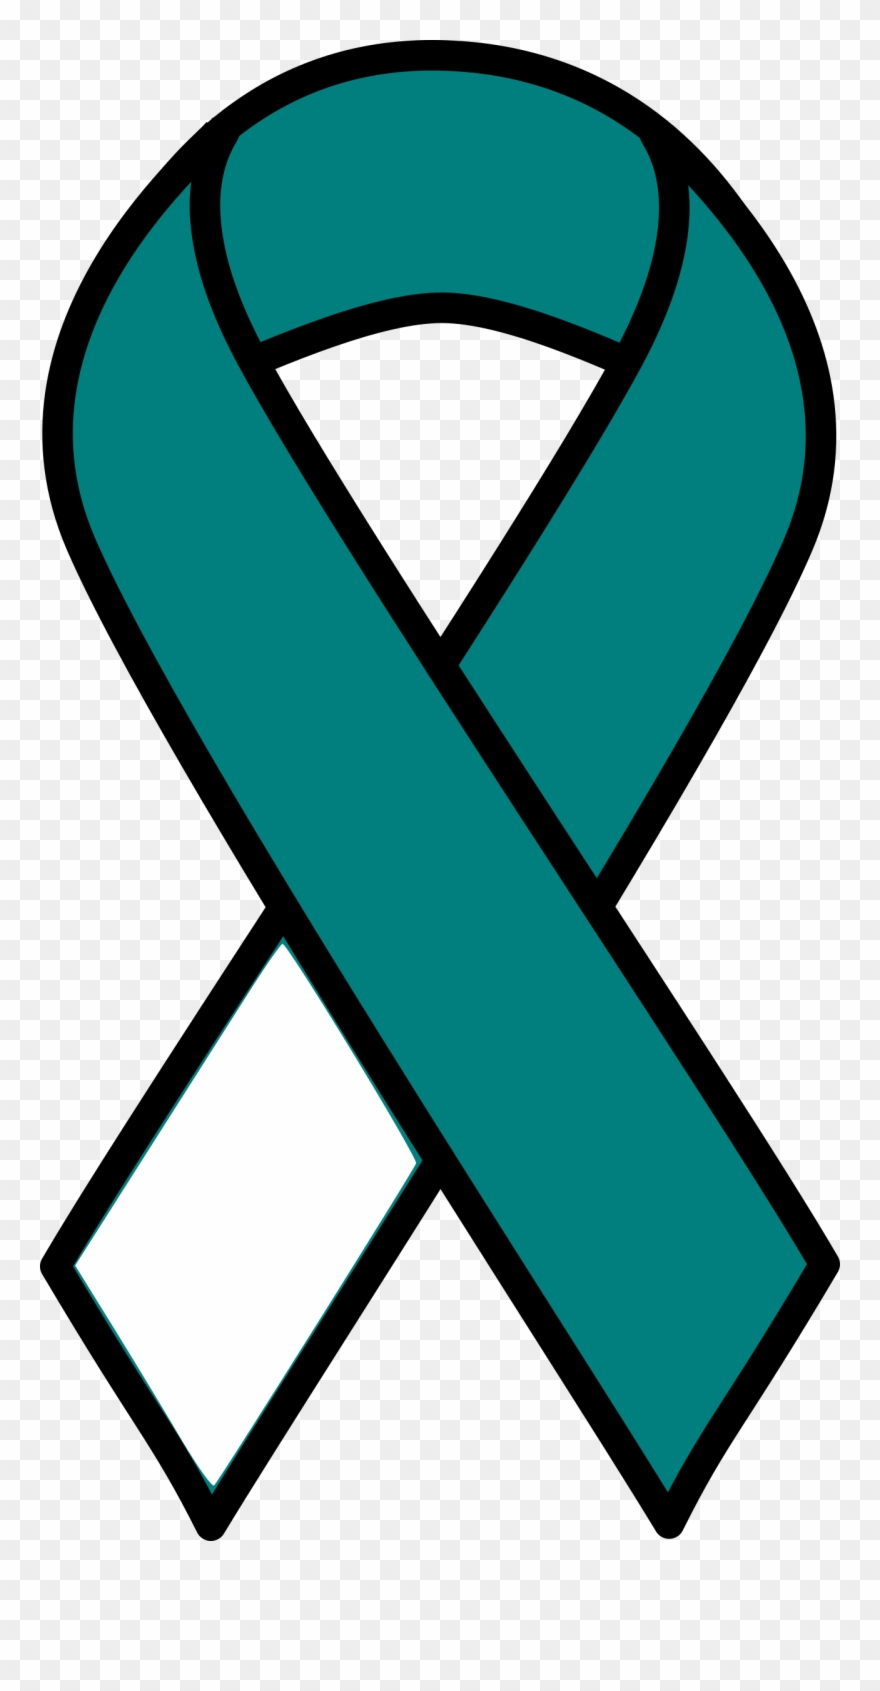 Cancer Ribbon Clip Art.